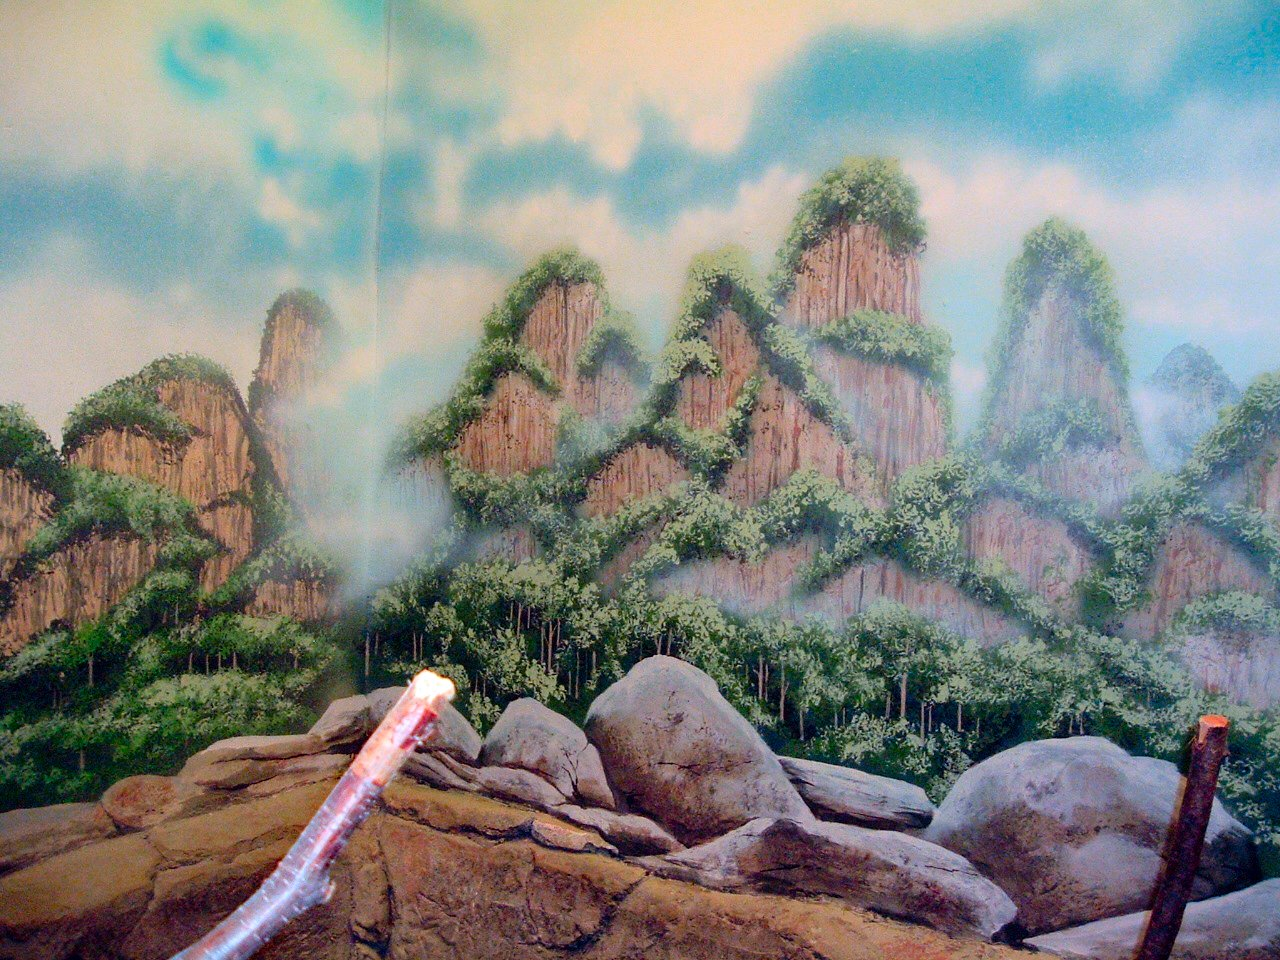 Como-Zoo-mural-carsks-painted-by-Paul-Barker